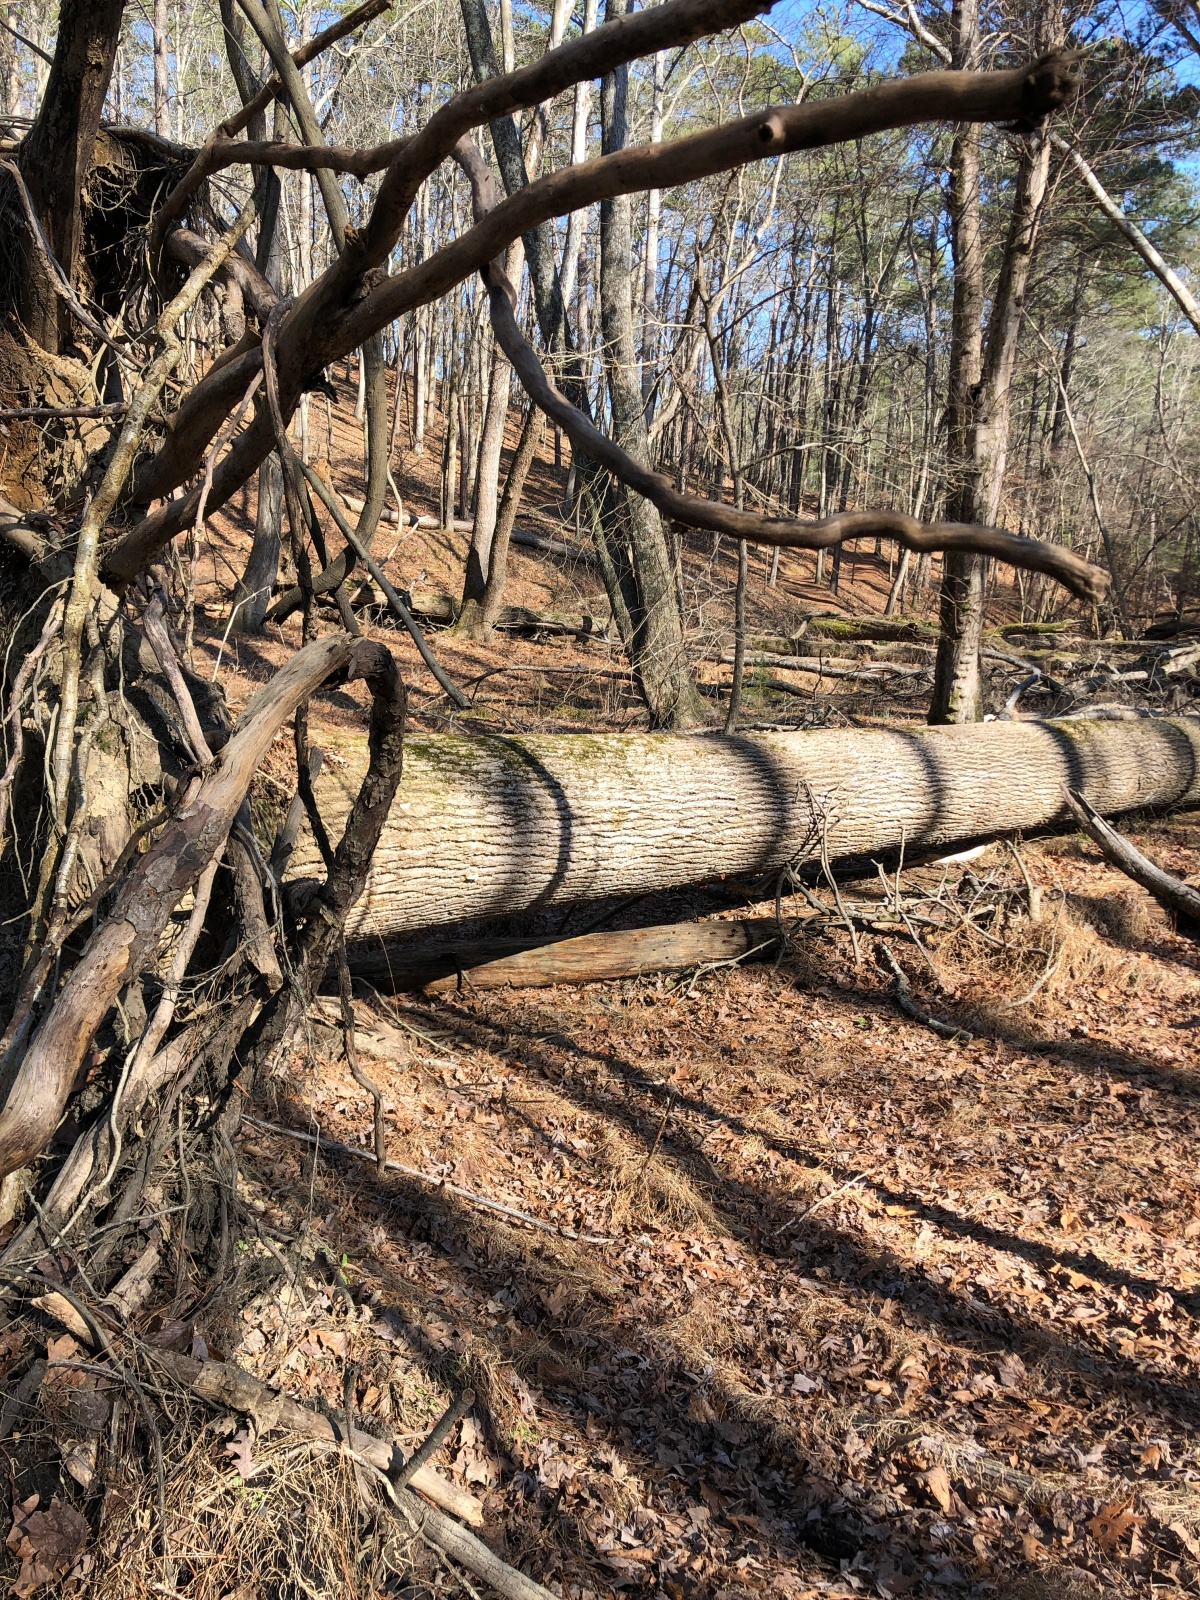 A fallen tree along the trail